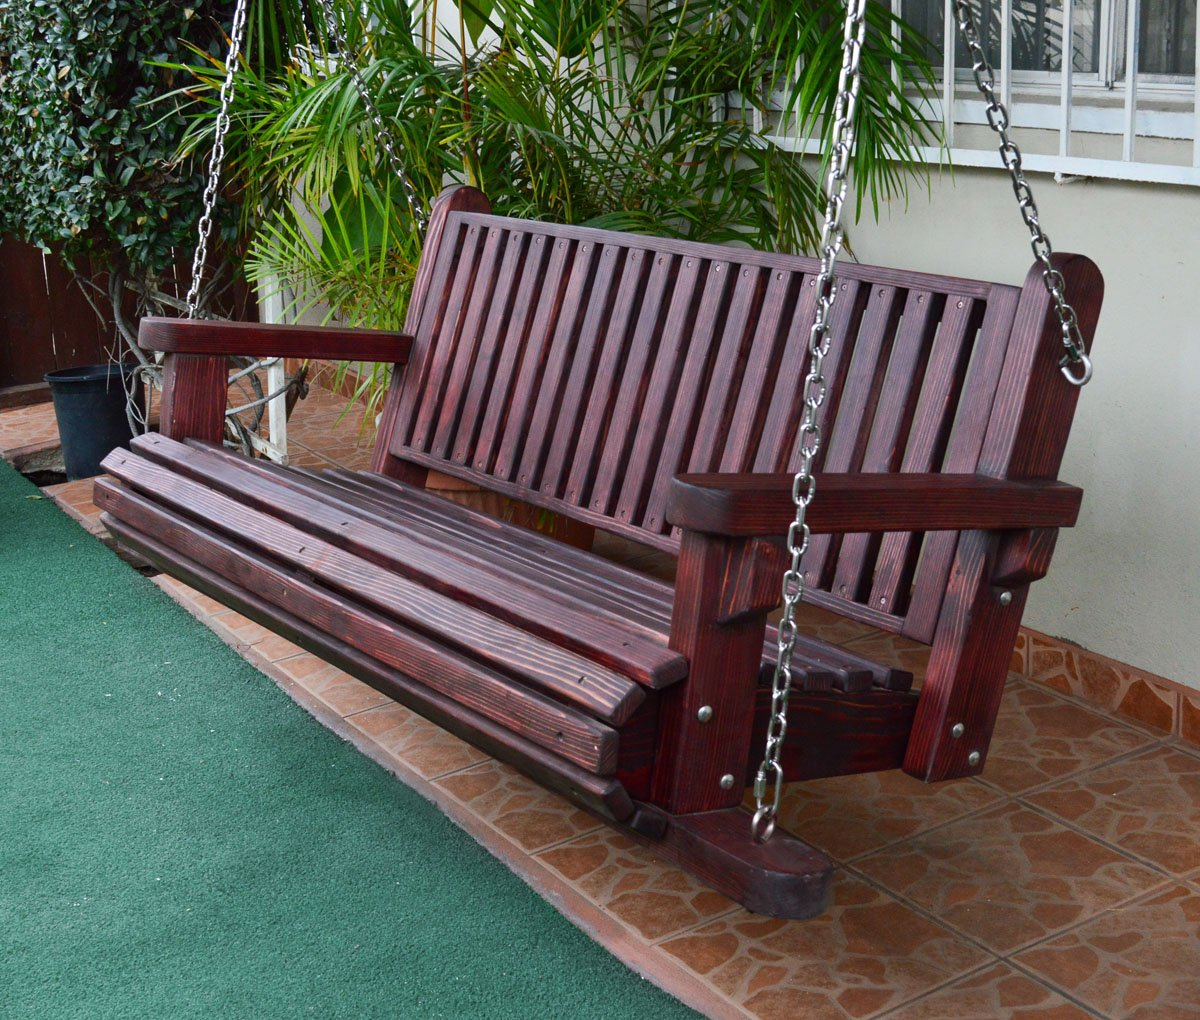 Swings Design: Bench Swings (Seats Only). Built To Last Decades